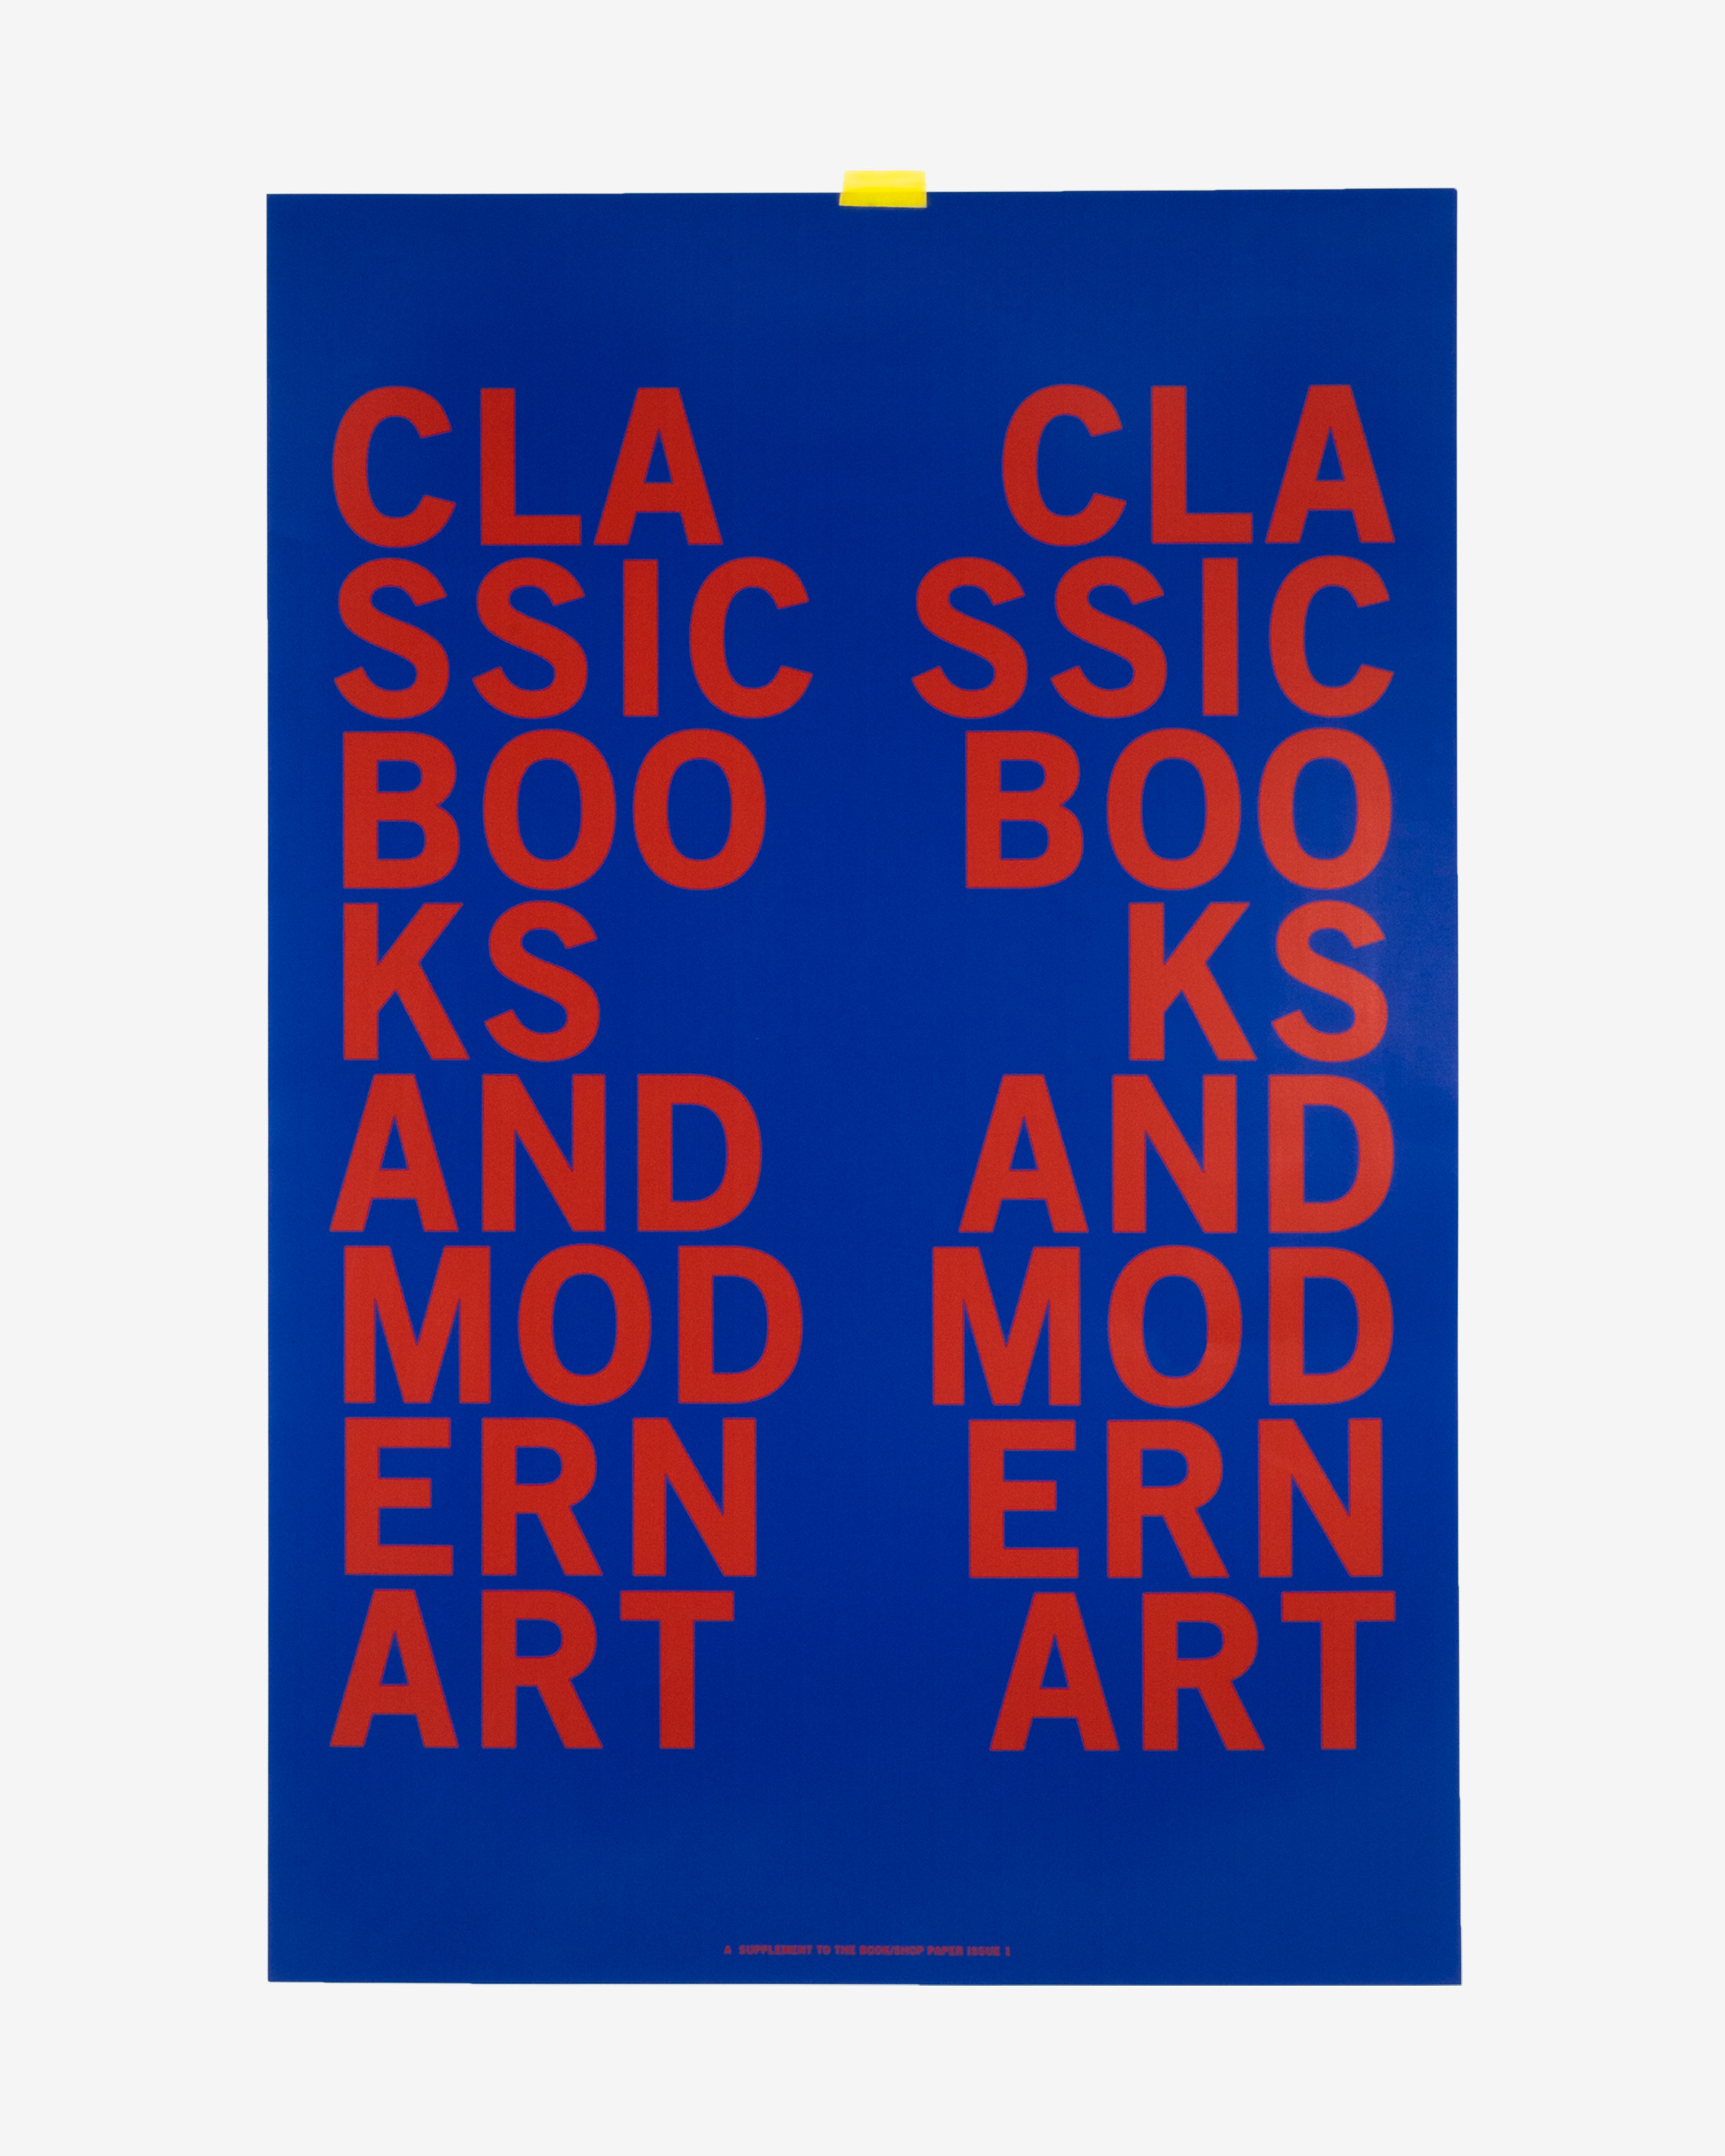 Classic Books And Modern Art Prints Blue Red In 2021 Modern Art Prints Classic Books Art Prints Blue